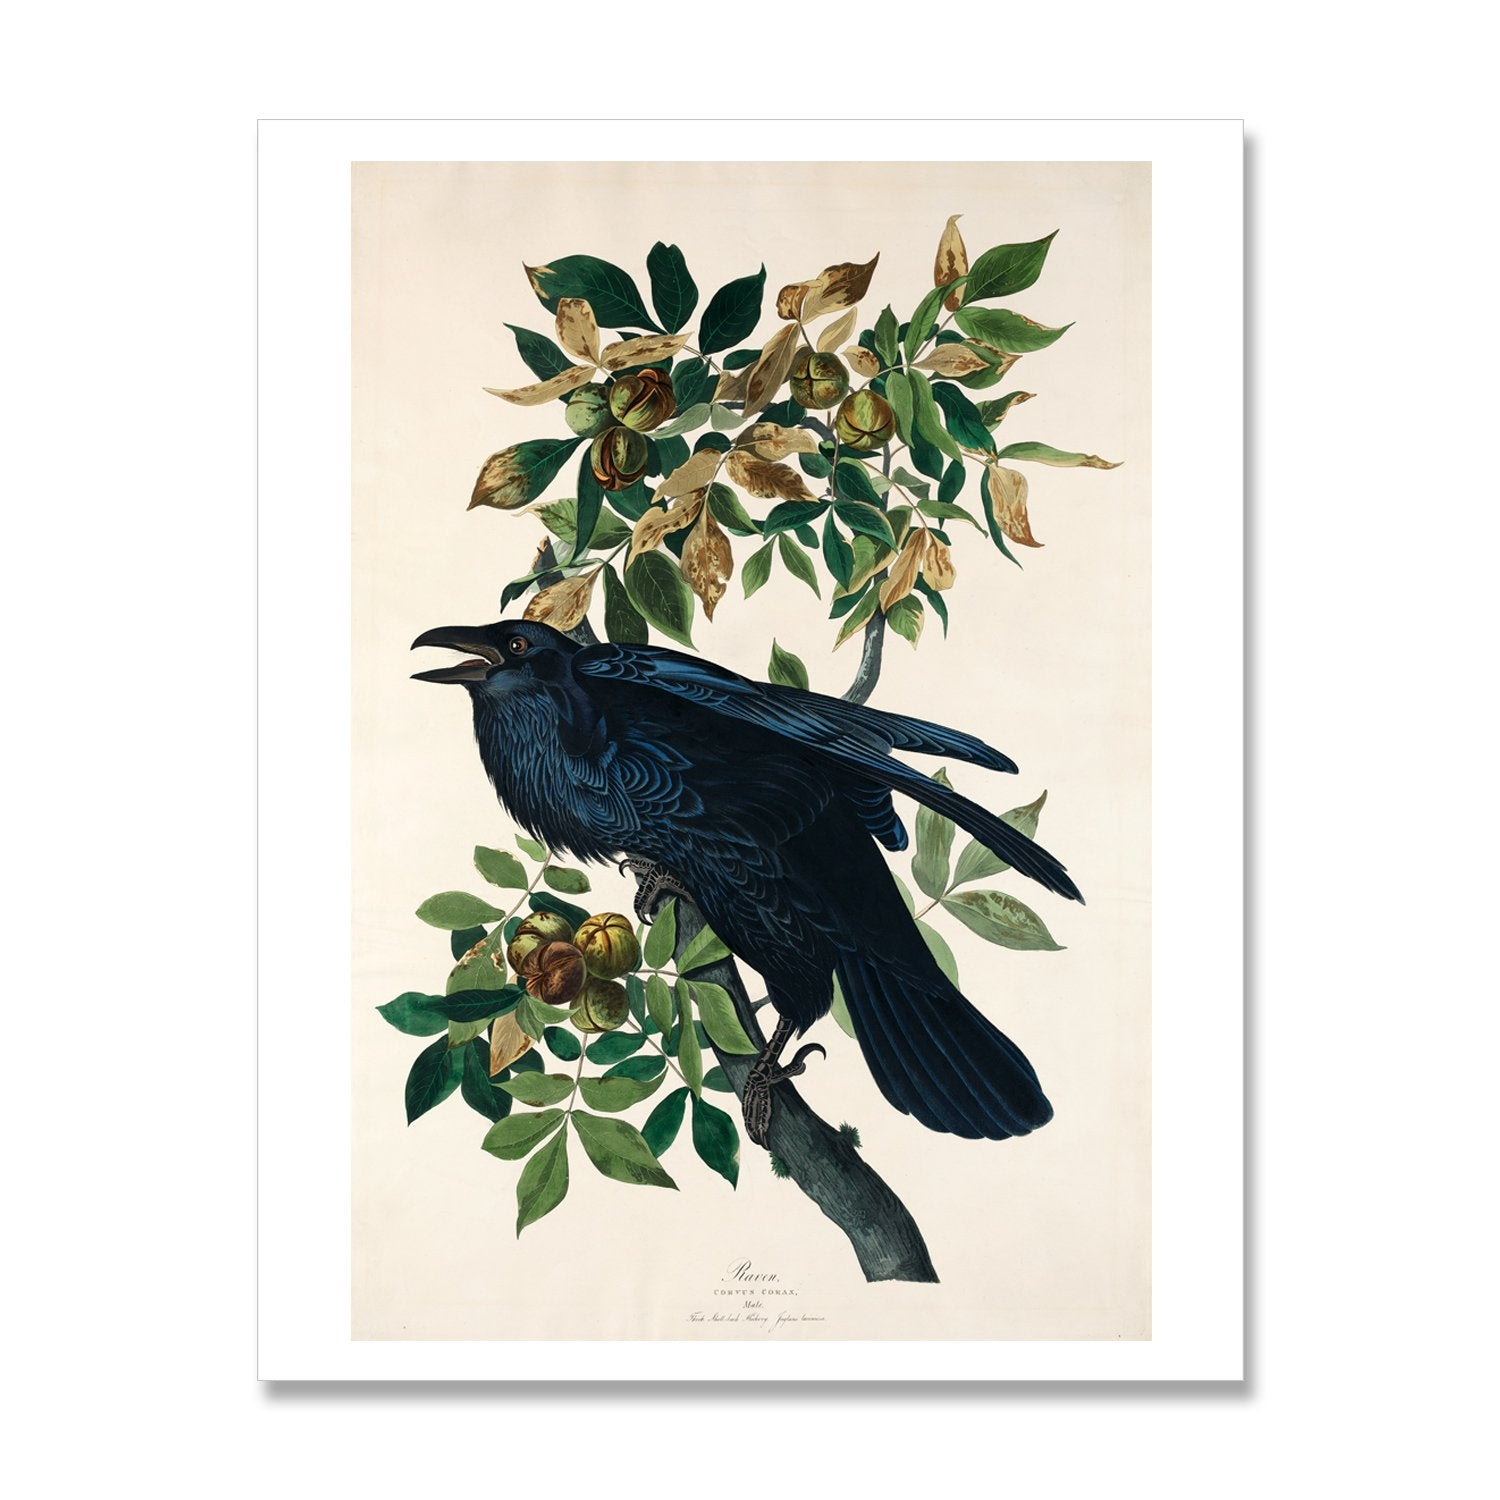 print of raven bird painting by audubon